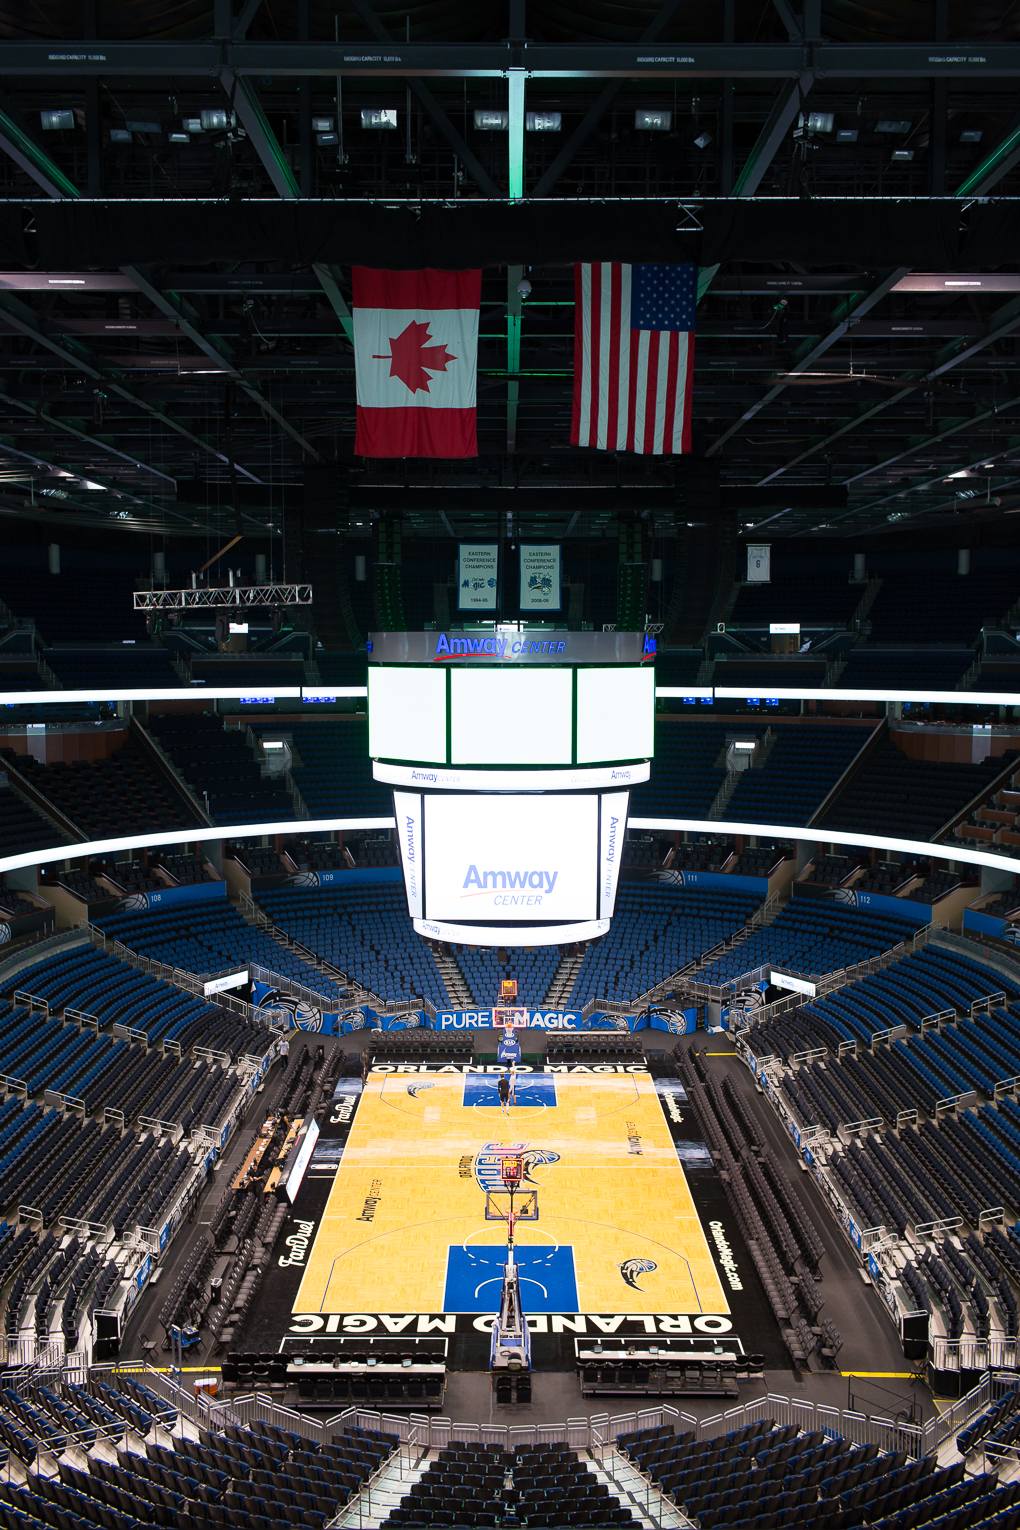 Orland-Magic-Amway-Center-THE-DAILY-STREET-10